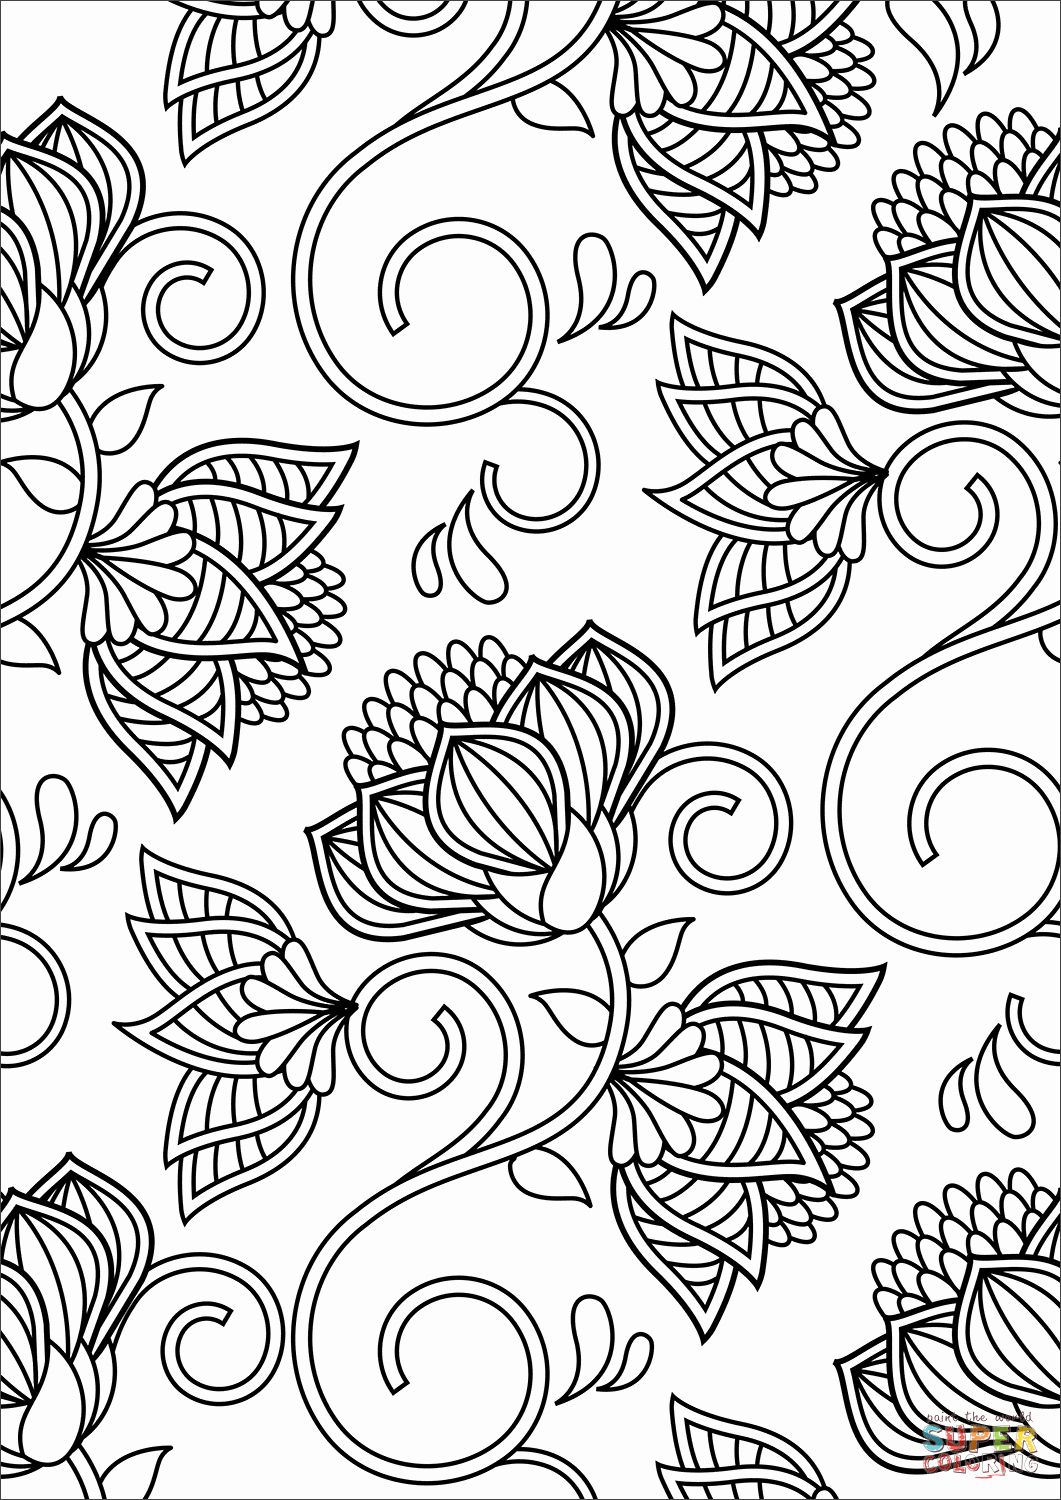 Flowers Coloring Sheets Free Printable Best Of Lotus Pattern Coloring Page Pattern Coloring Pages Flower Coloring Sheets Abstract Coloring Pages